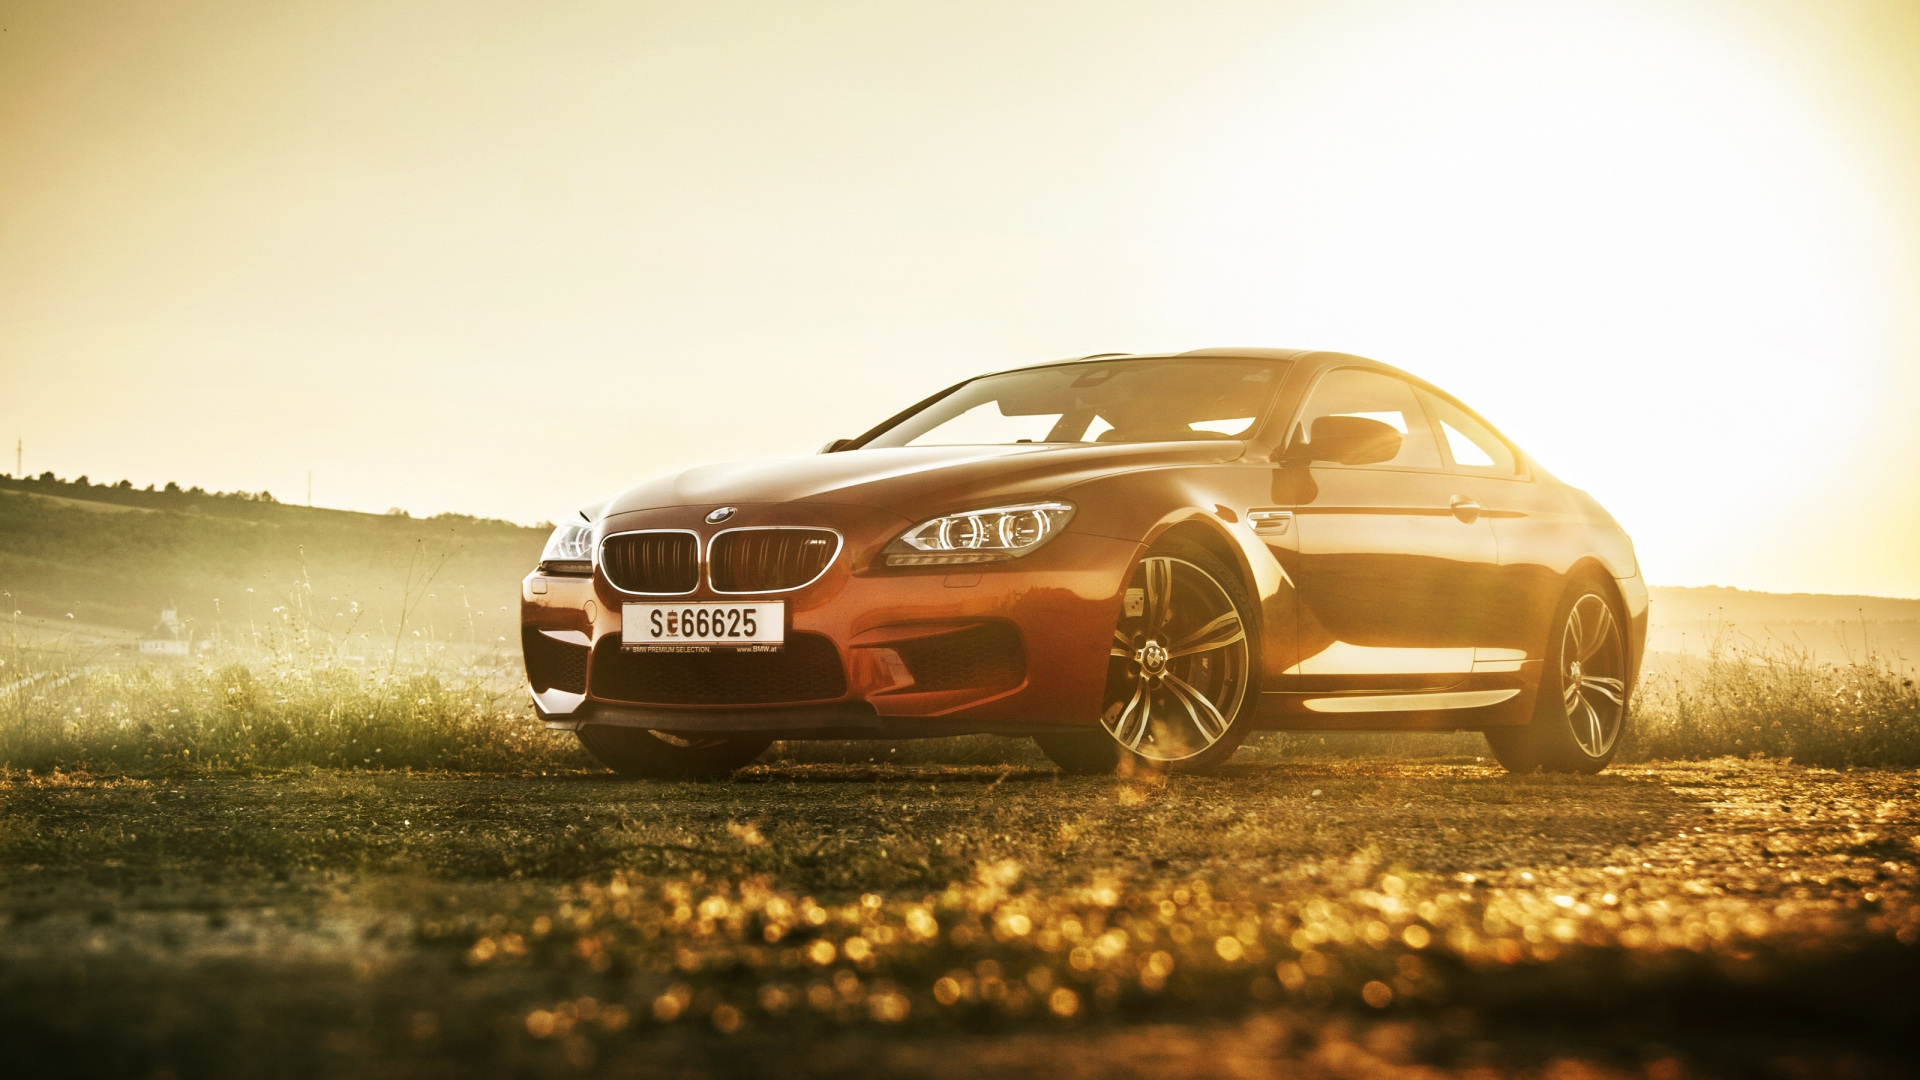 Download bmw latest cars free hd wallpapers, bmw models like bmw 1m, bmw 1 series, 2, 3, 4, 5, 6, 7, 8 gt desktop wallpaper and backgrounds, bmw sports cars. Cars Full Hd Bmw 1920x1080 Download Hd Wallpaper Wallpapertip